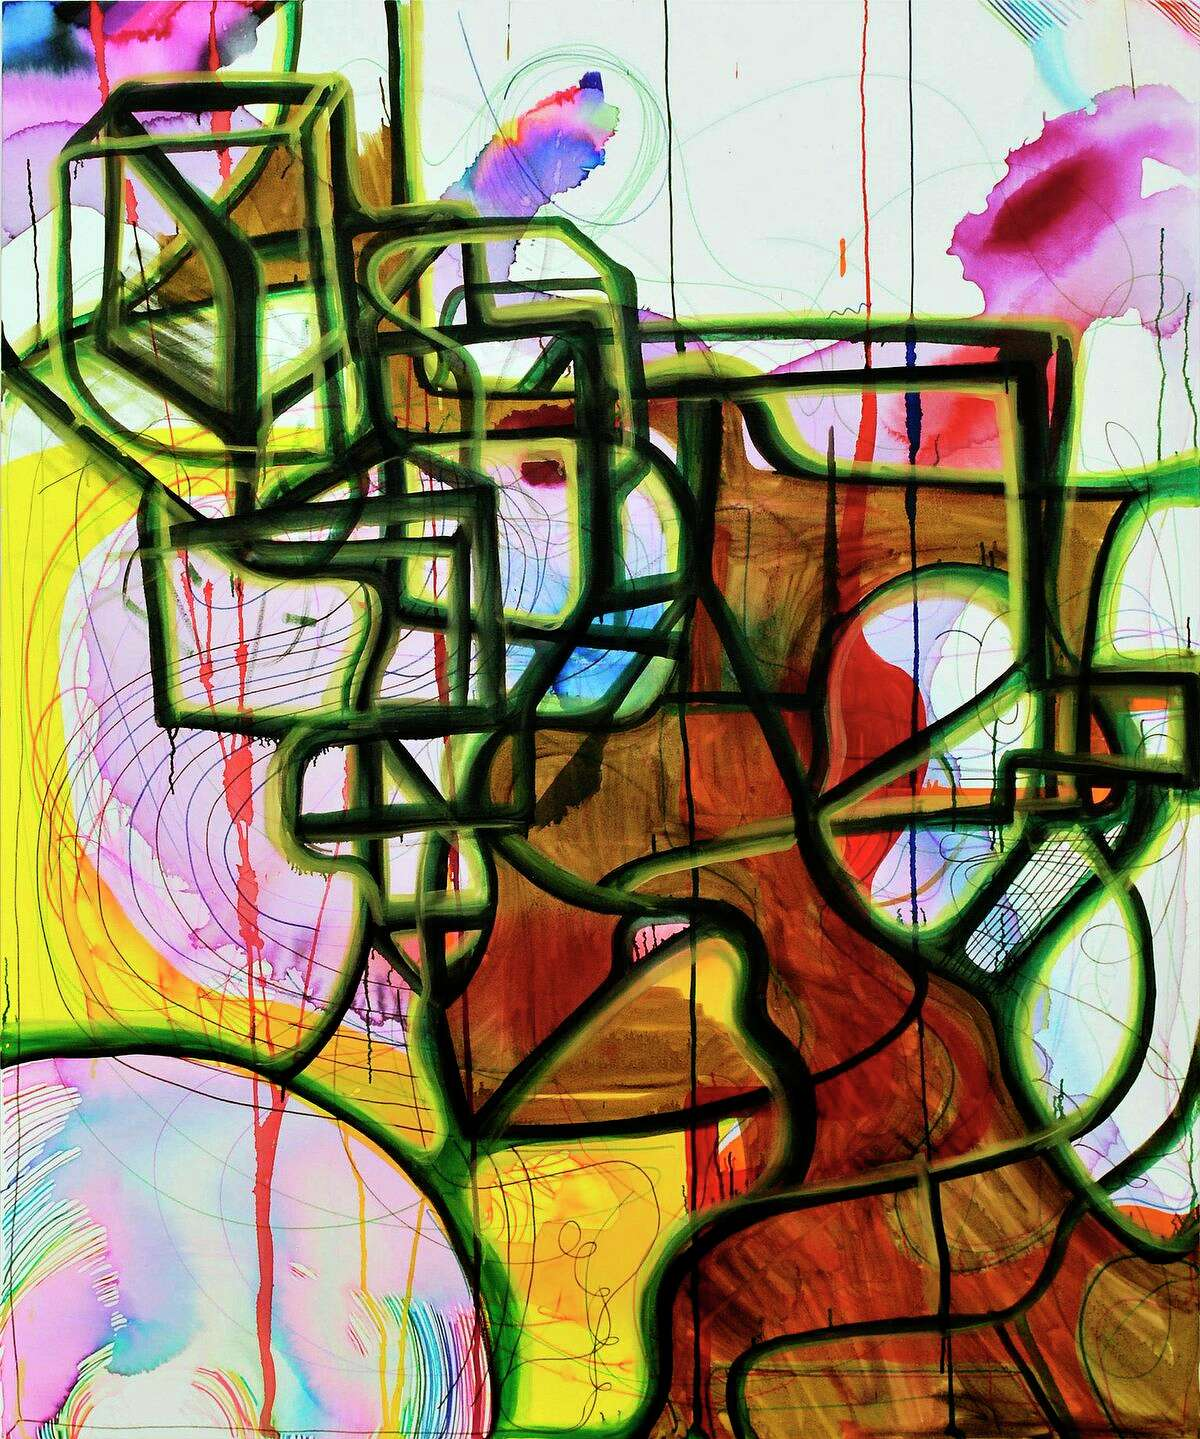 Texas Gallery is presenting the first Houston show of paintings by New York artist Joanne Greenbaum, through March 29.